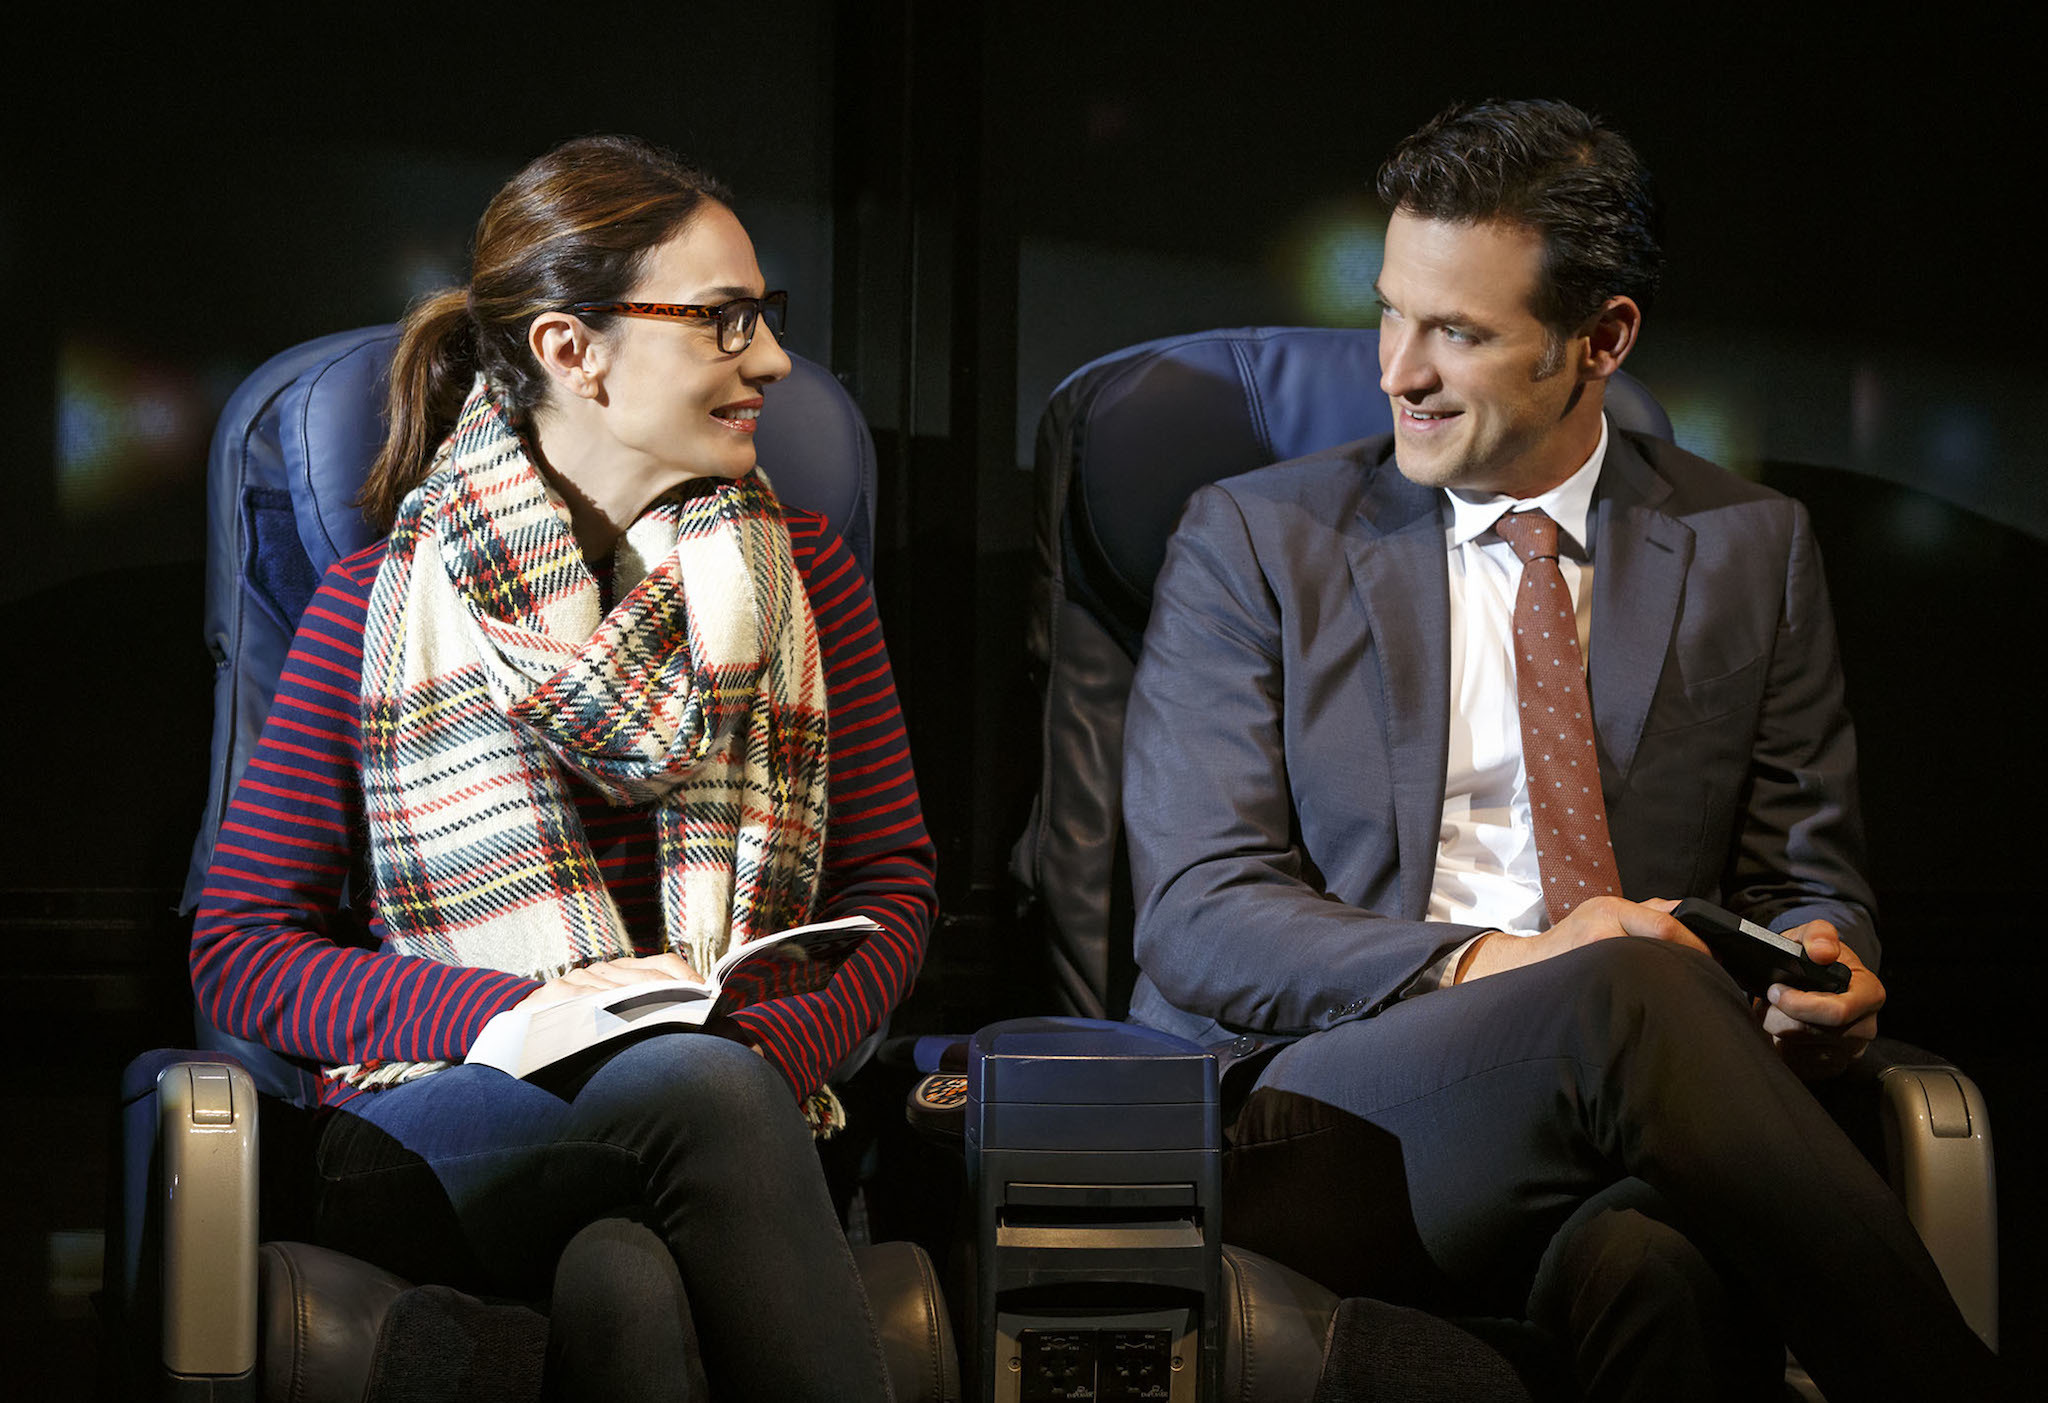 Theater review: The Layover at Second Stage Theatre mixes sex and lies